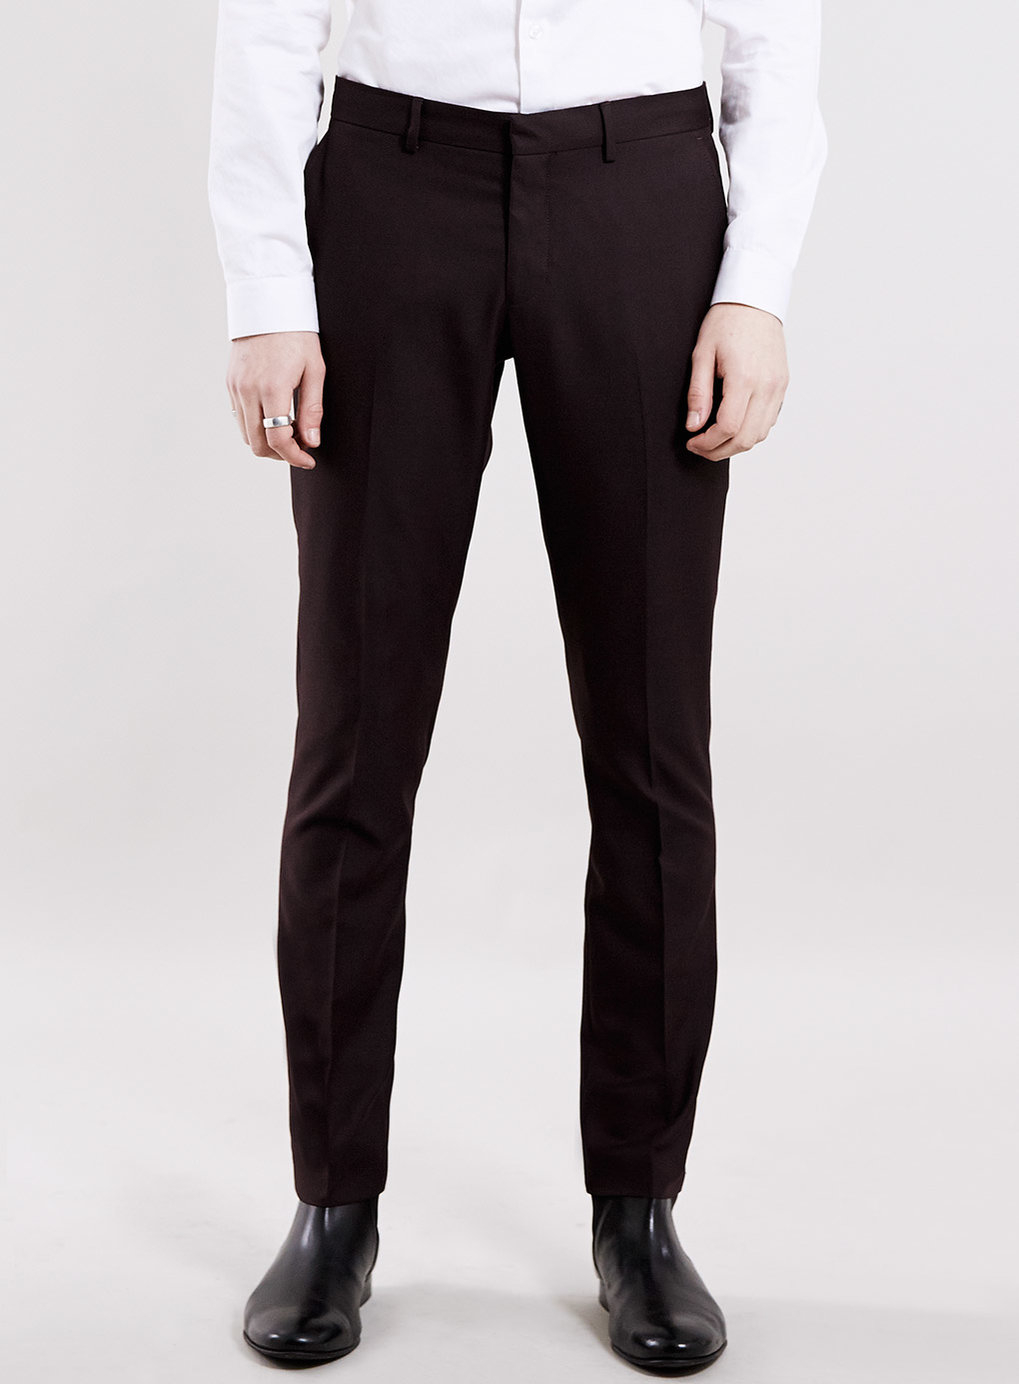 Free shipping on men's dress pants at allshop-940oko3h.ga Shop flat-front & pleated pants in cotton, wool & more. Totally free shipping & returns.